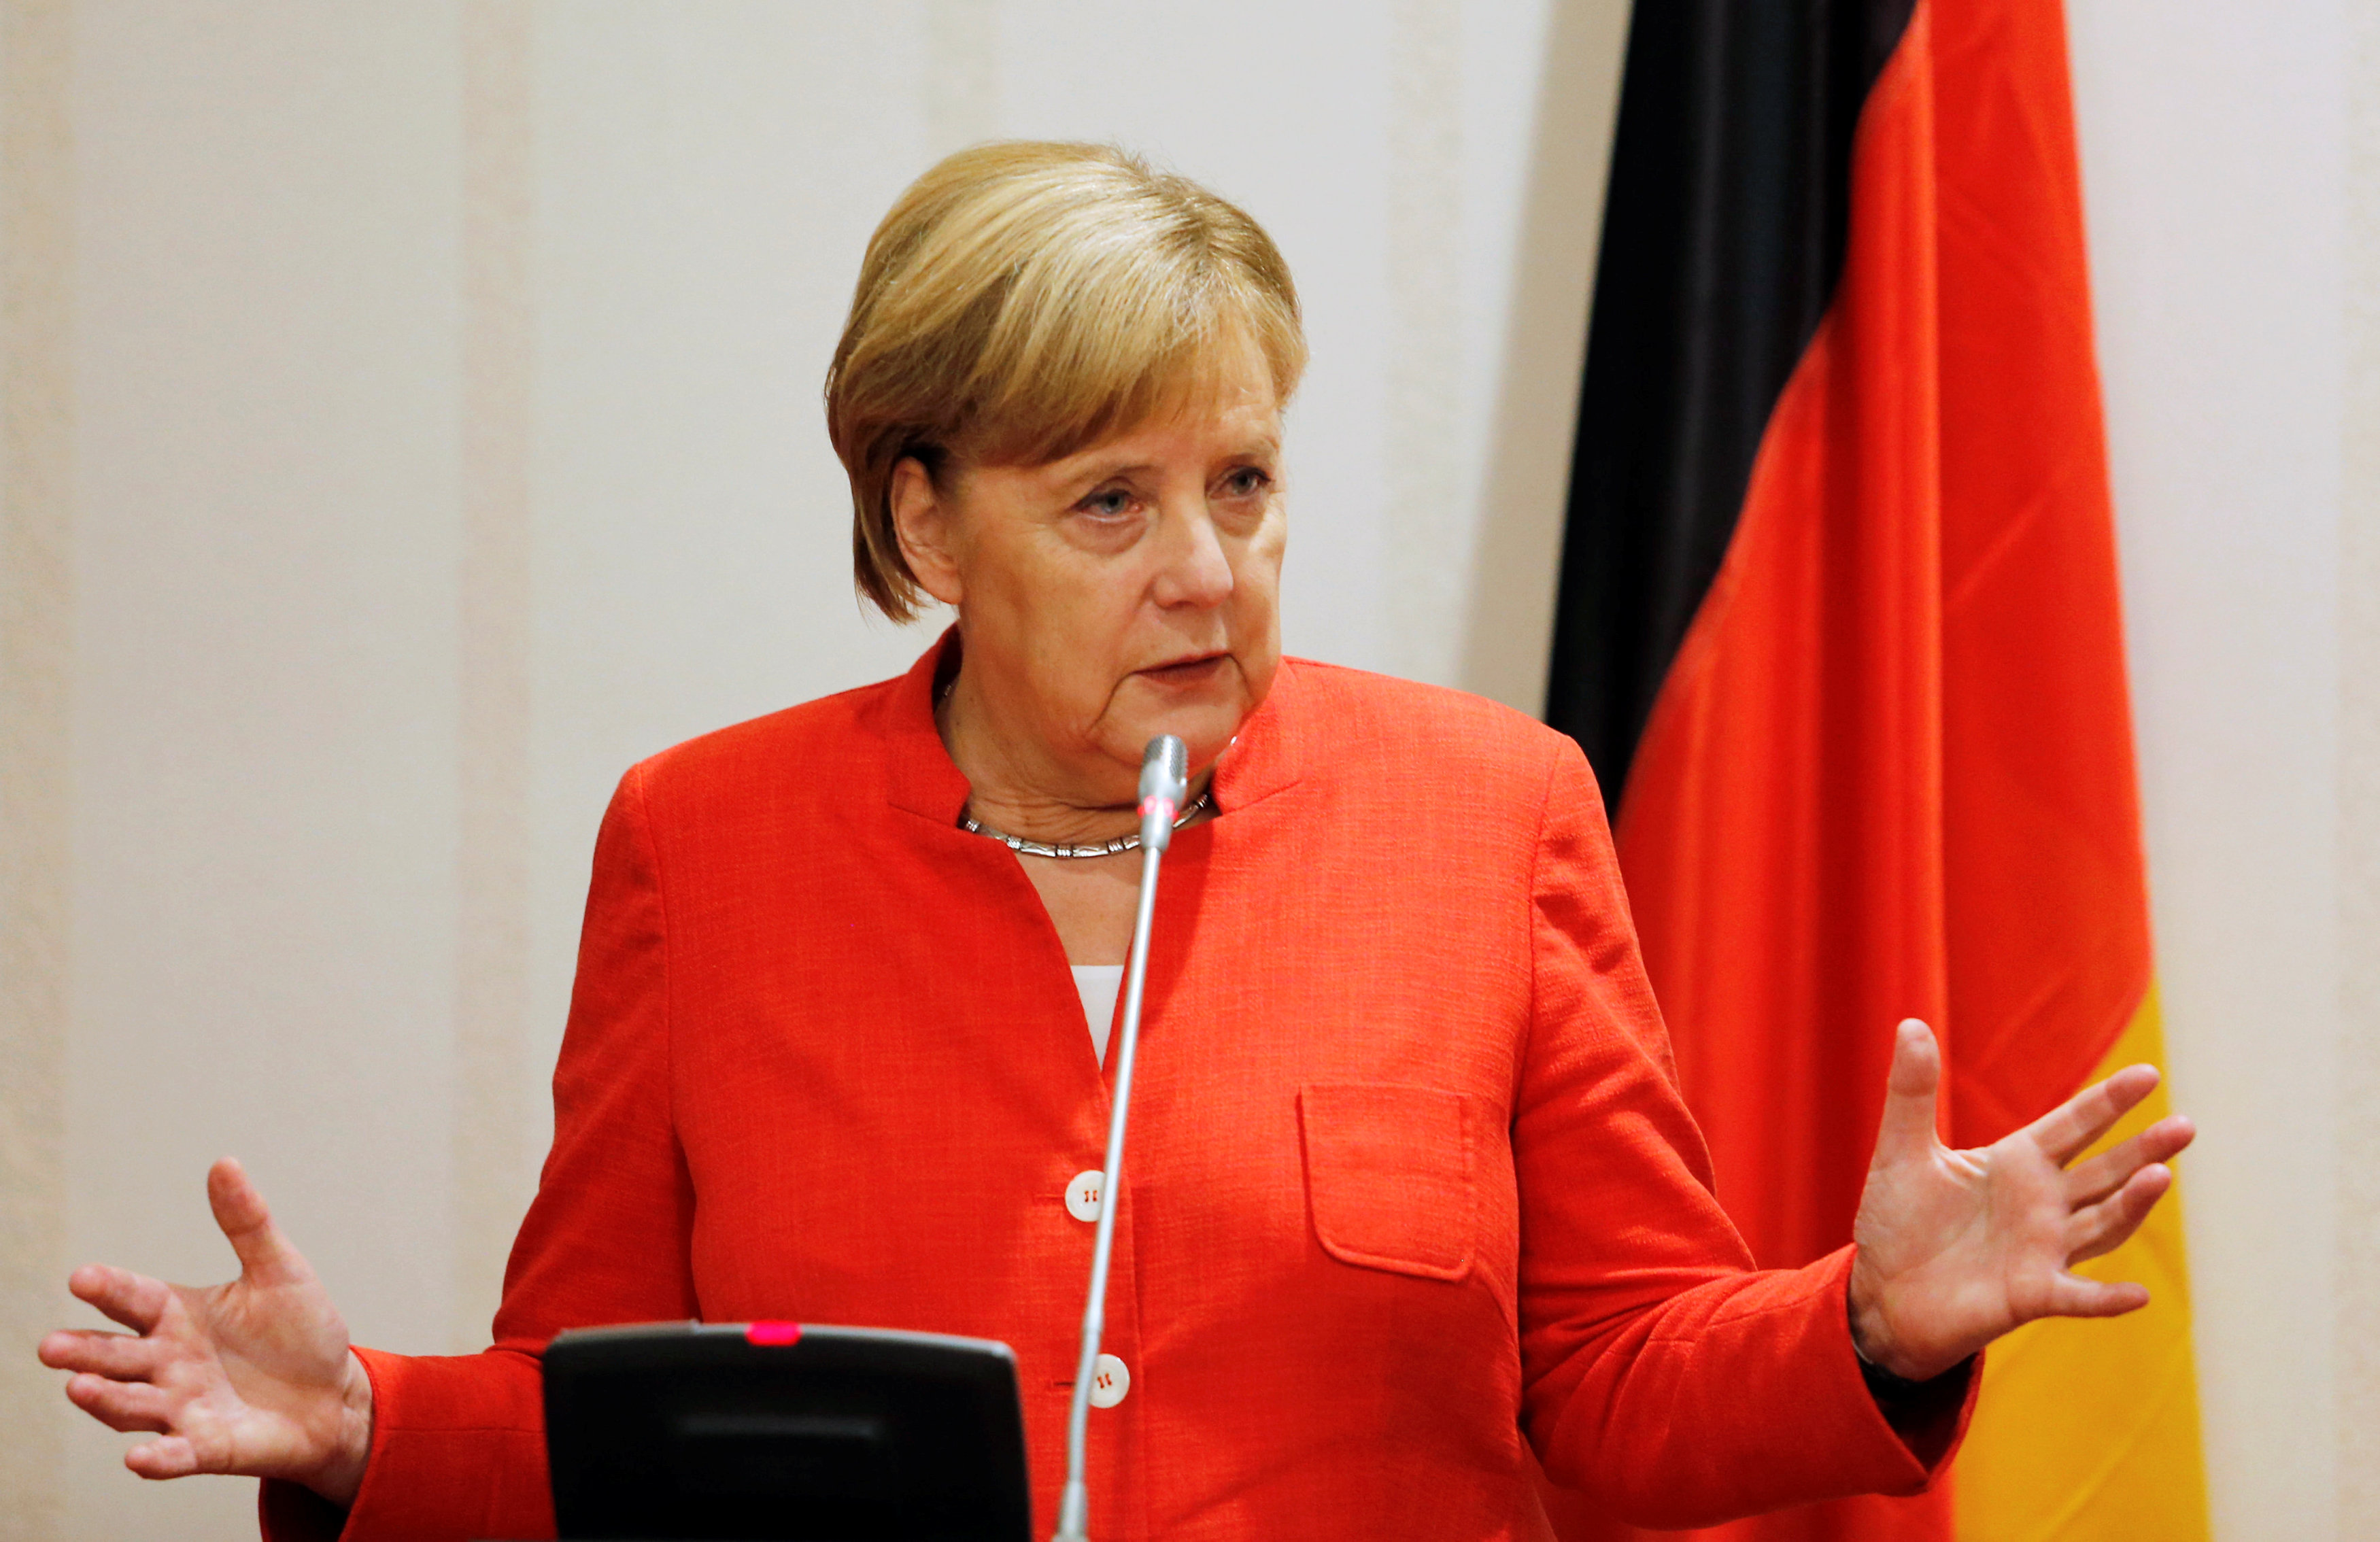 German Chancellor Angela Merkel addresses a news conference at the presidential villa in Abuja, Nigeria, August 31, 2018. REUTERS/Afolabi Sotunde